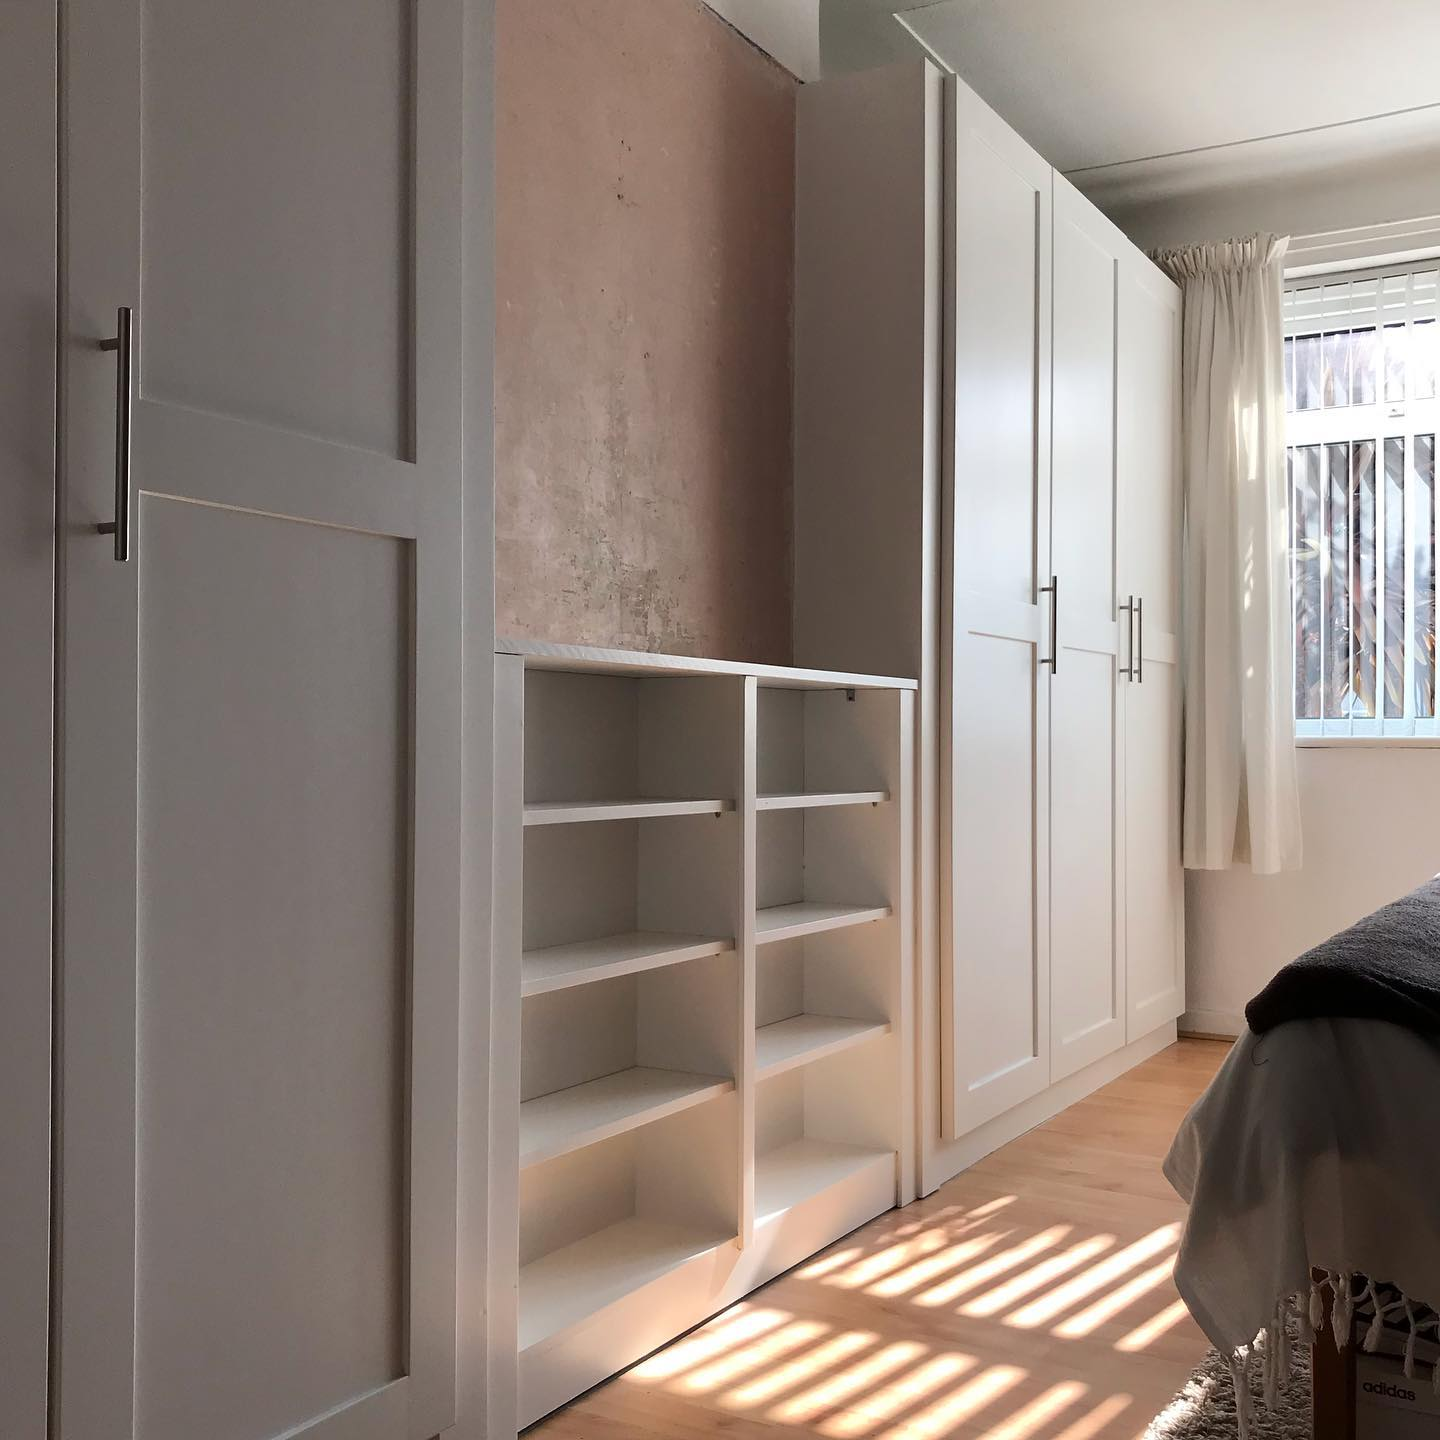 Fitted wardrobes and shelving in bedroom